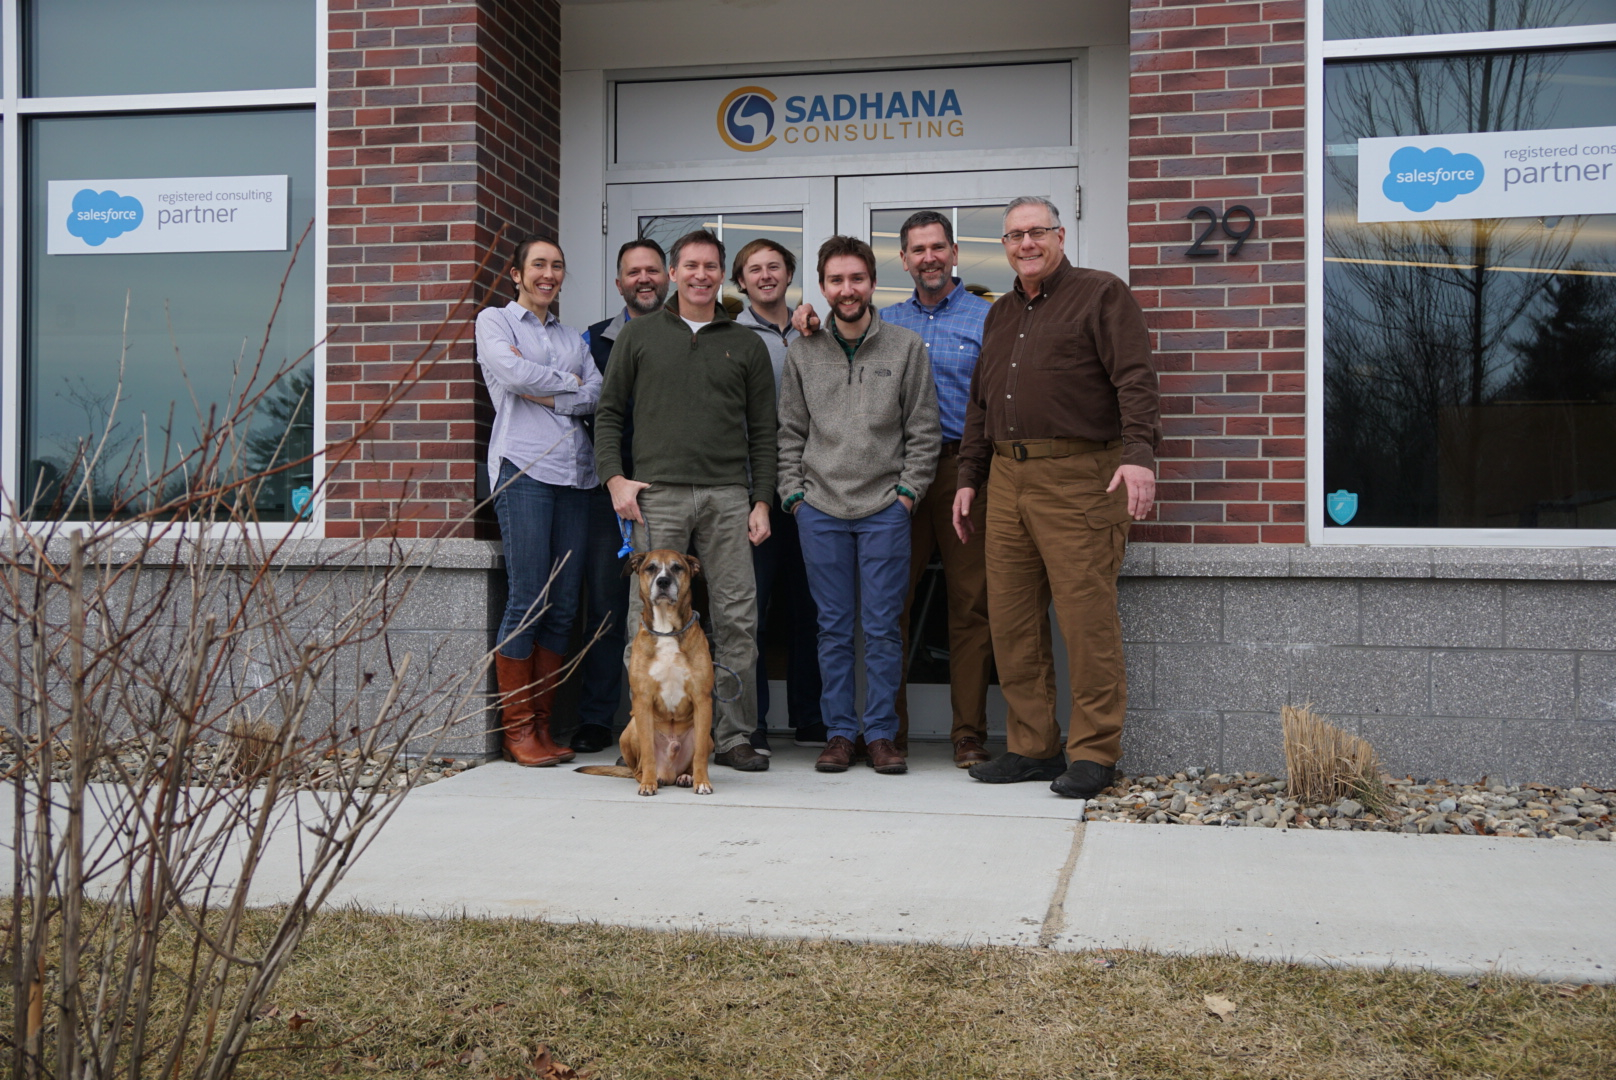 Sadhana Consulting Doubles Dover, NH Office Space